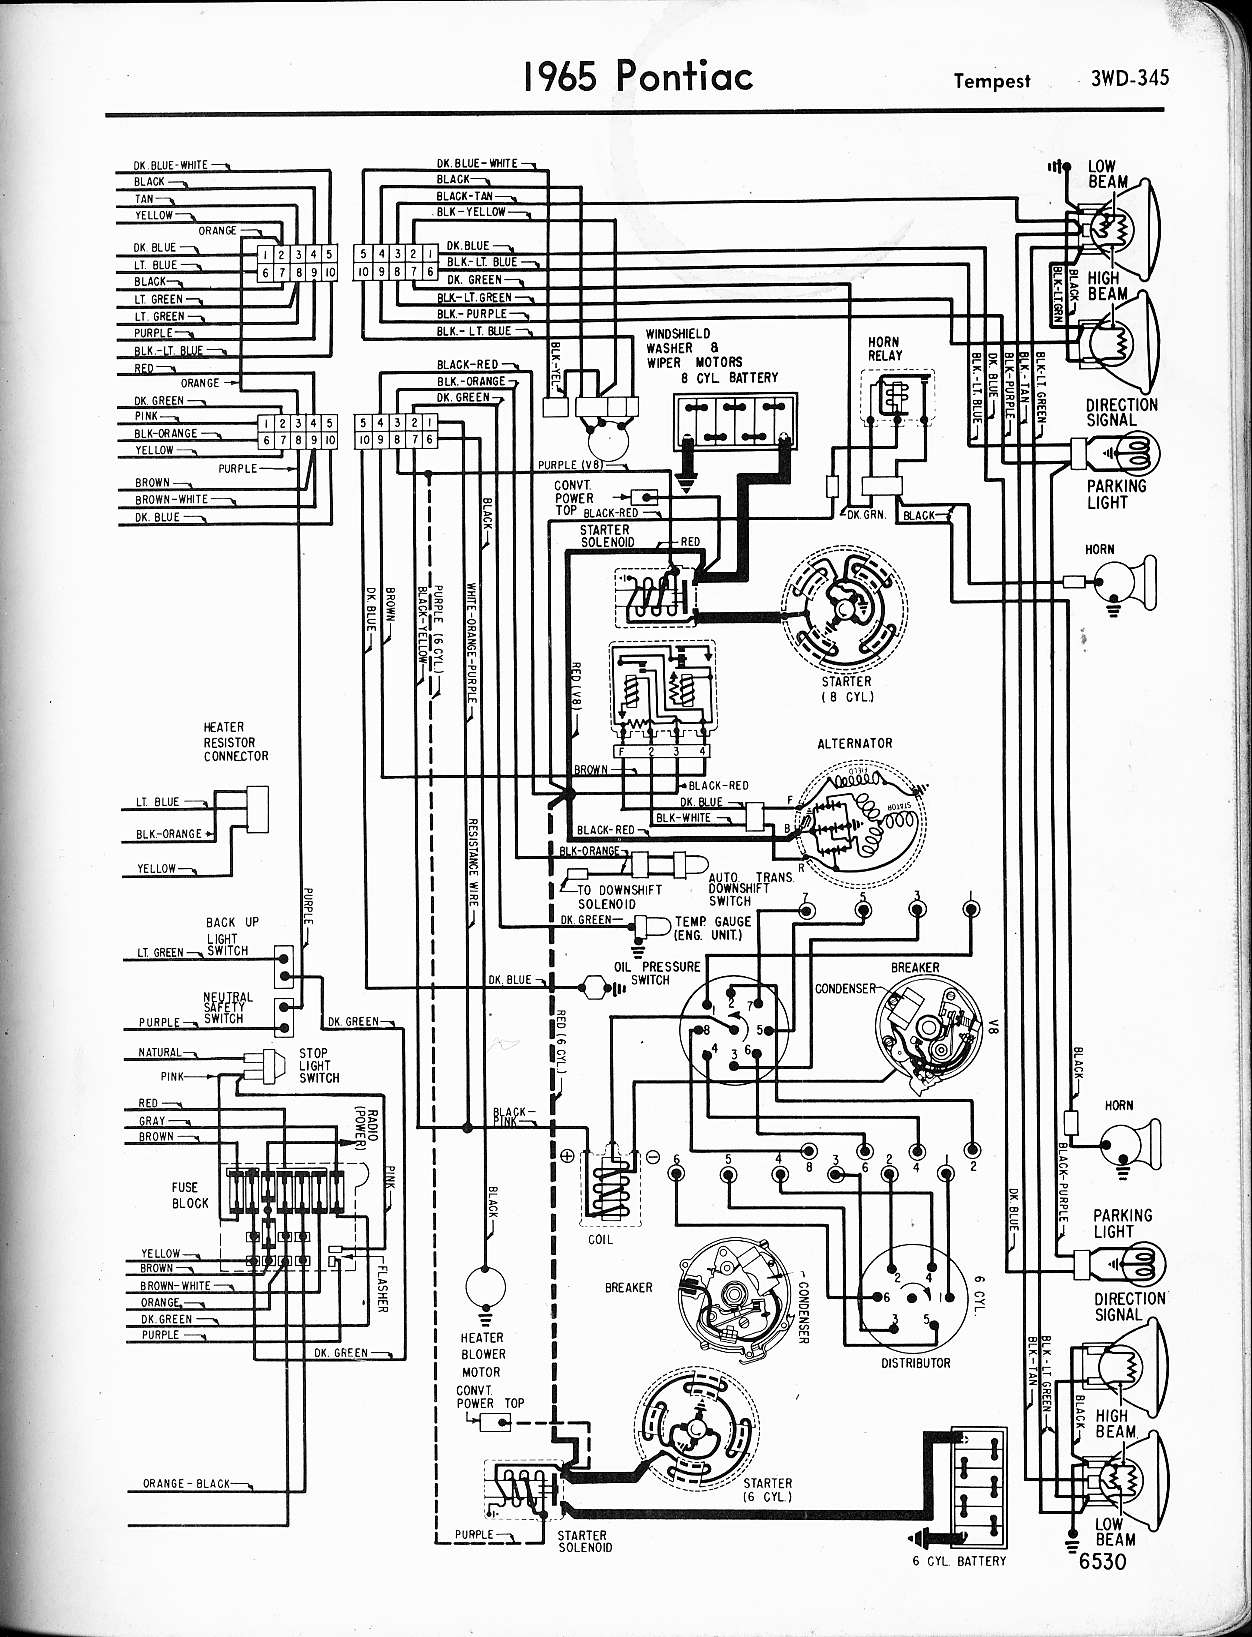 1970 Gto Wiring Diagram - Wiring Diagram Schematic Name  Chevelle Wiring Harness on 64 chevelle engine compartment, 64 chevelle trunk latch, 64 chevelle hood latch, 66 mustang wiring harness, 64 chevelle trunk lid, 64 chevelle ignition wiring, 64 chevelle tail lights, 64 chevelle motor mounts, 69 camaro wiring harness, 67 mustang wiring harness, 64 chevelle hood scoop, 64 chevelle headlights,